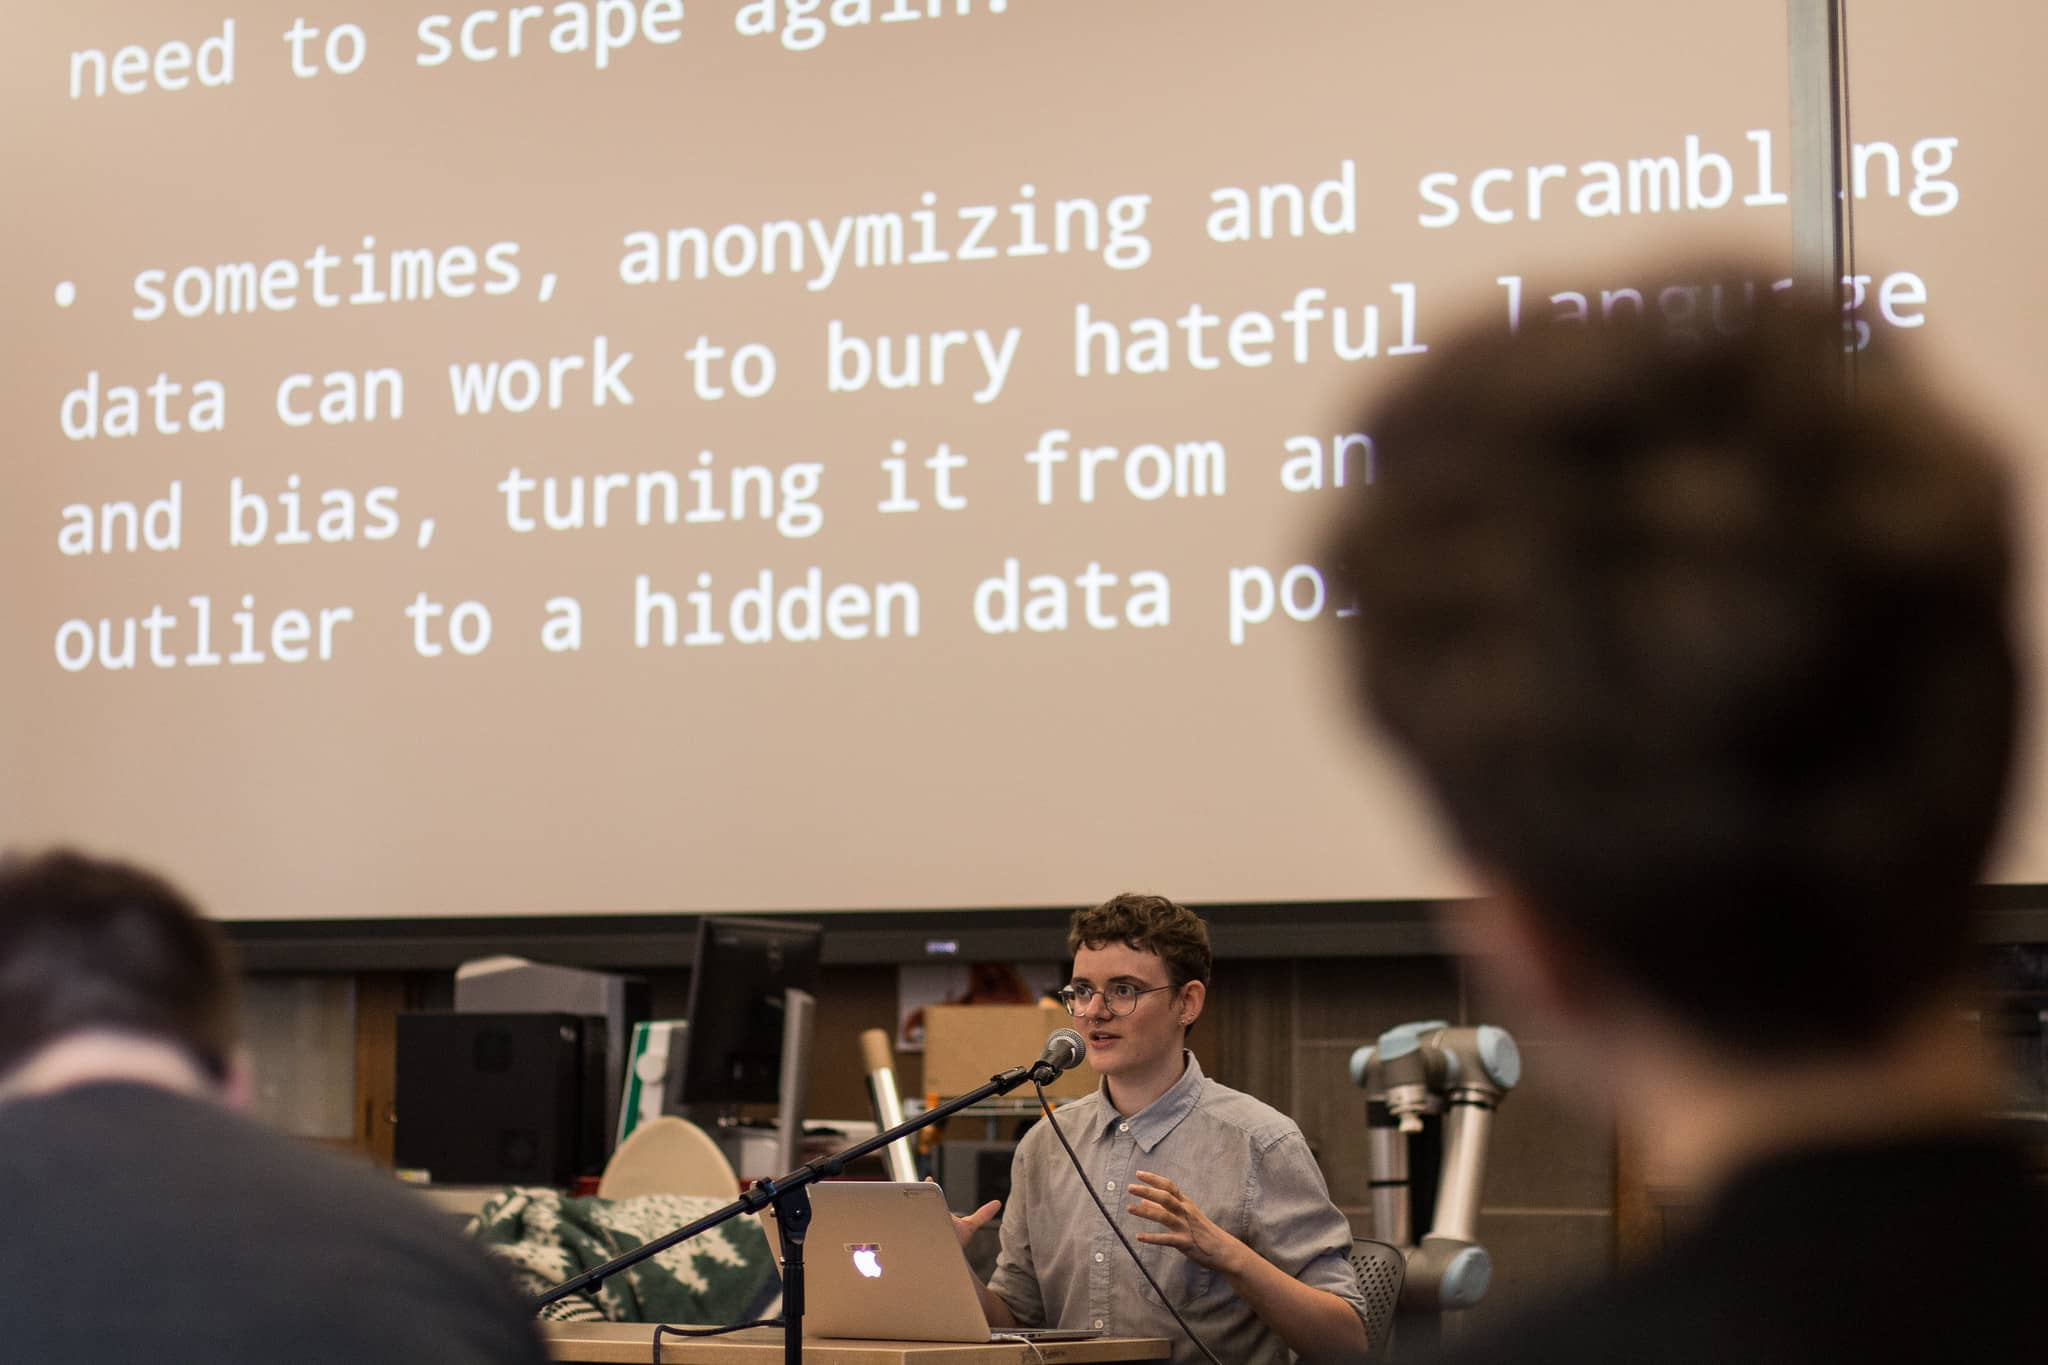 Participant speaks at a podium in front of projected text about the problem with anonymyzing data""